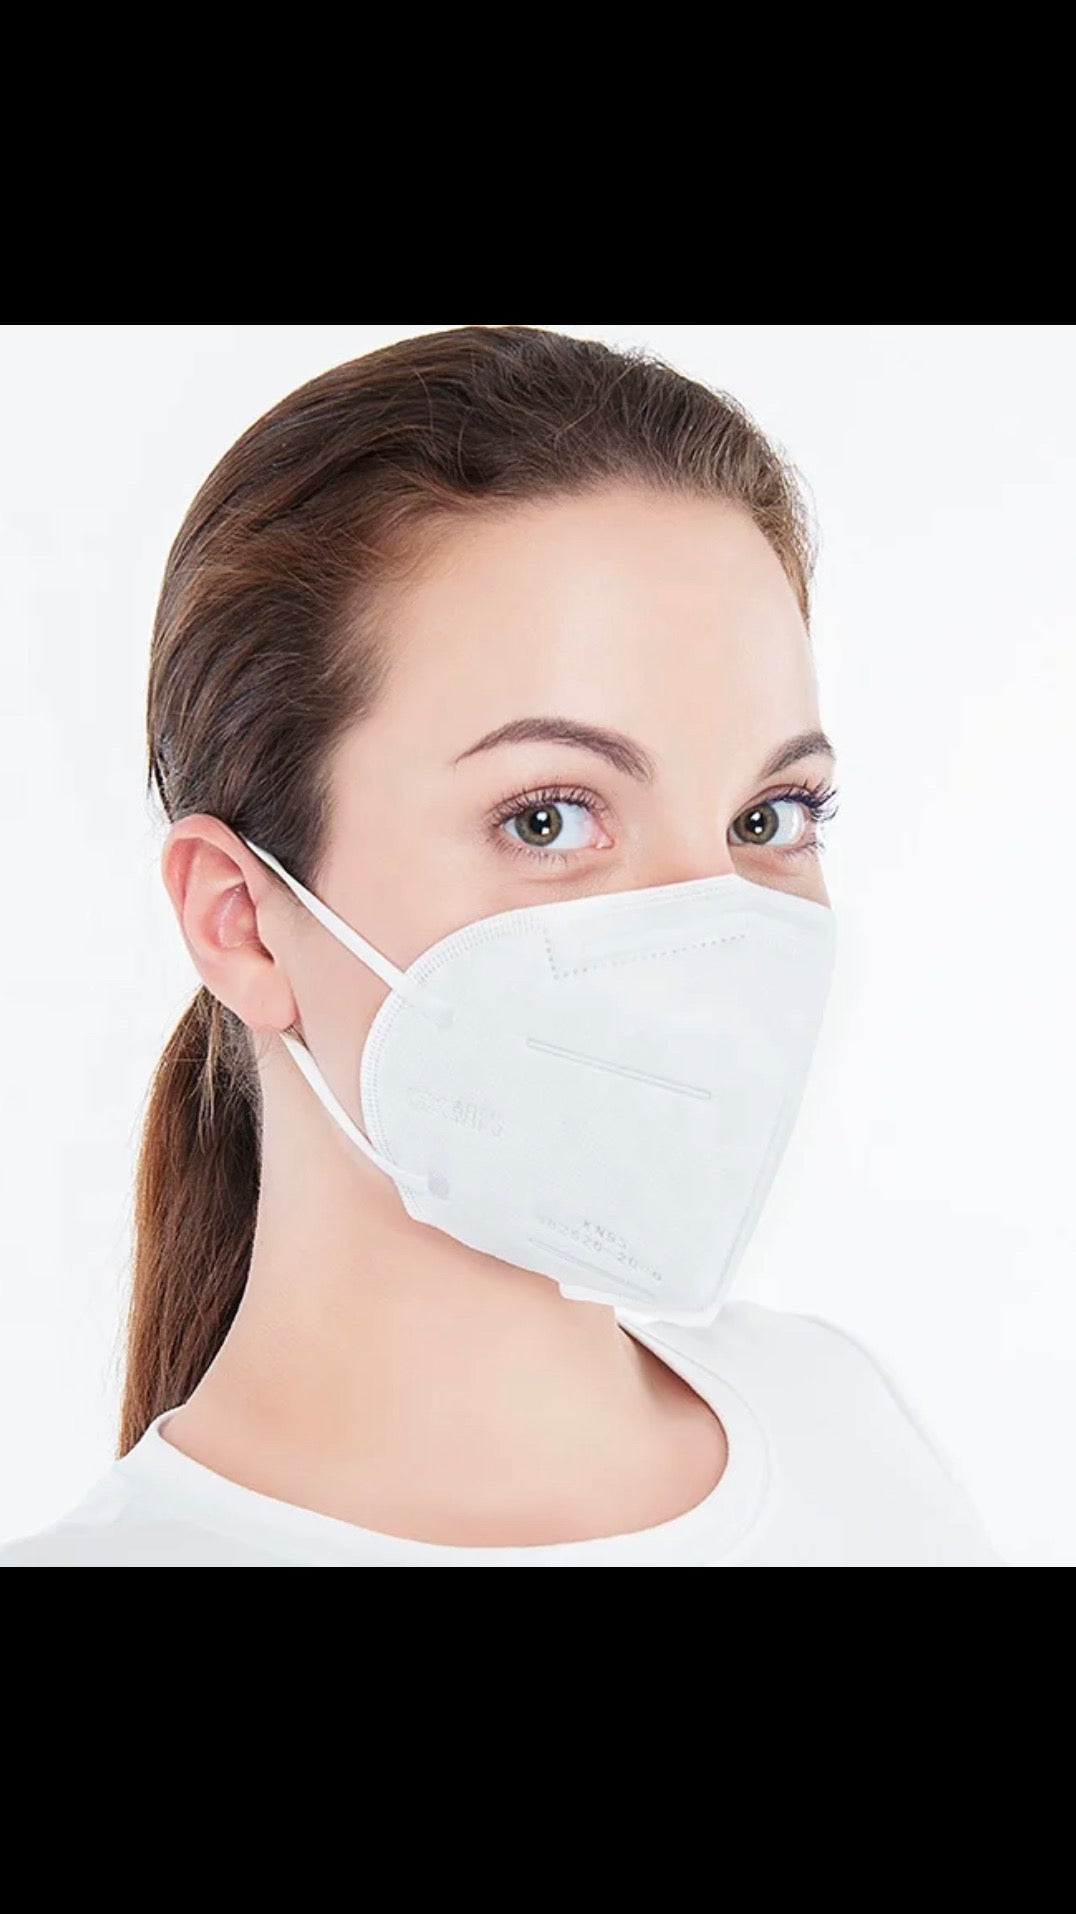 N95 Face Mask (Civilian Use Only)